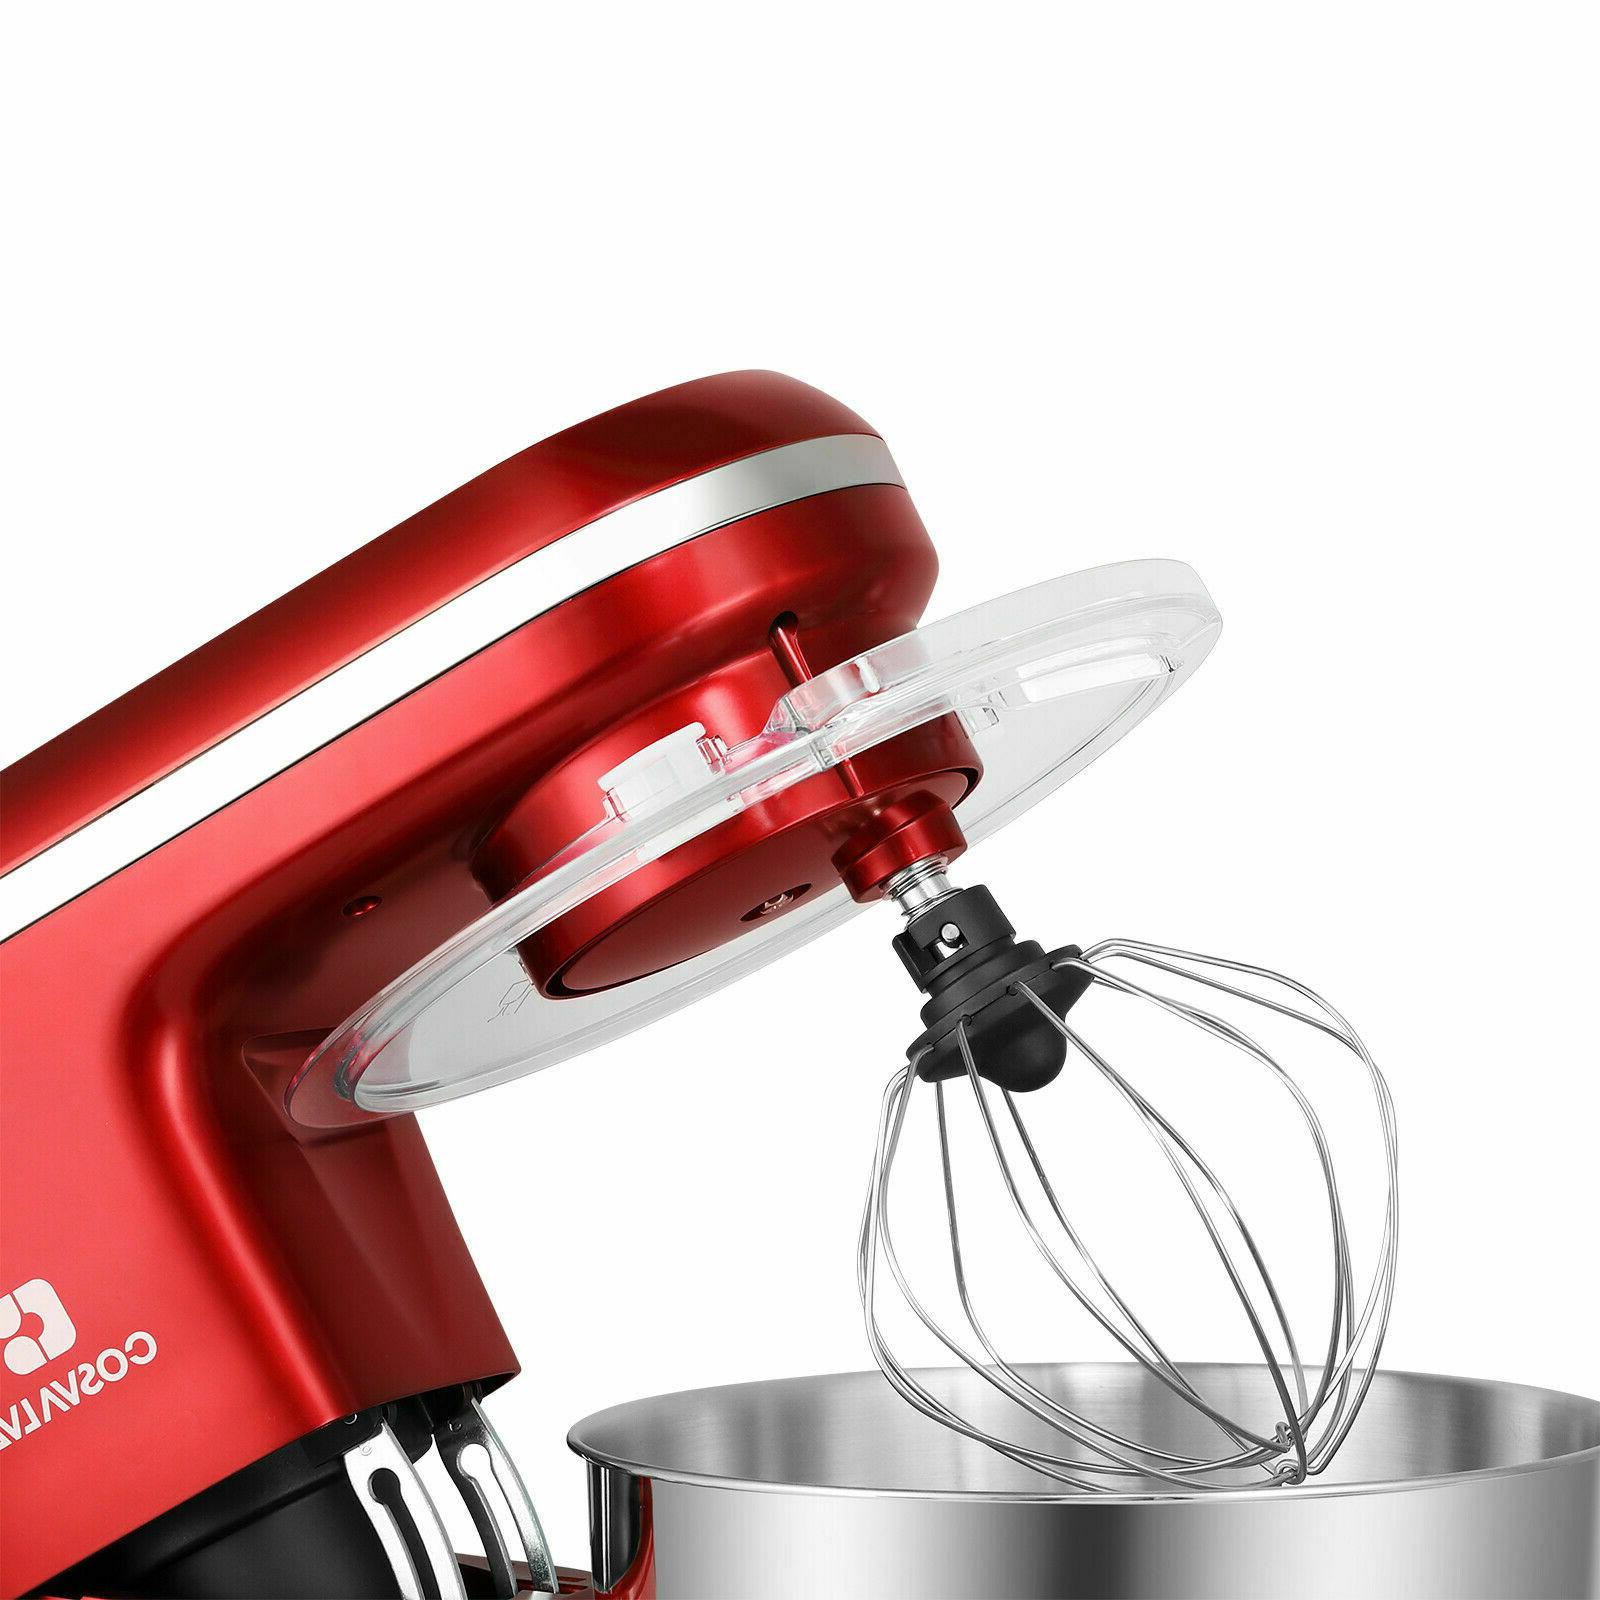 Pro Mixer 6-Speed Kitchen Stainless Bowl Red